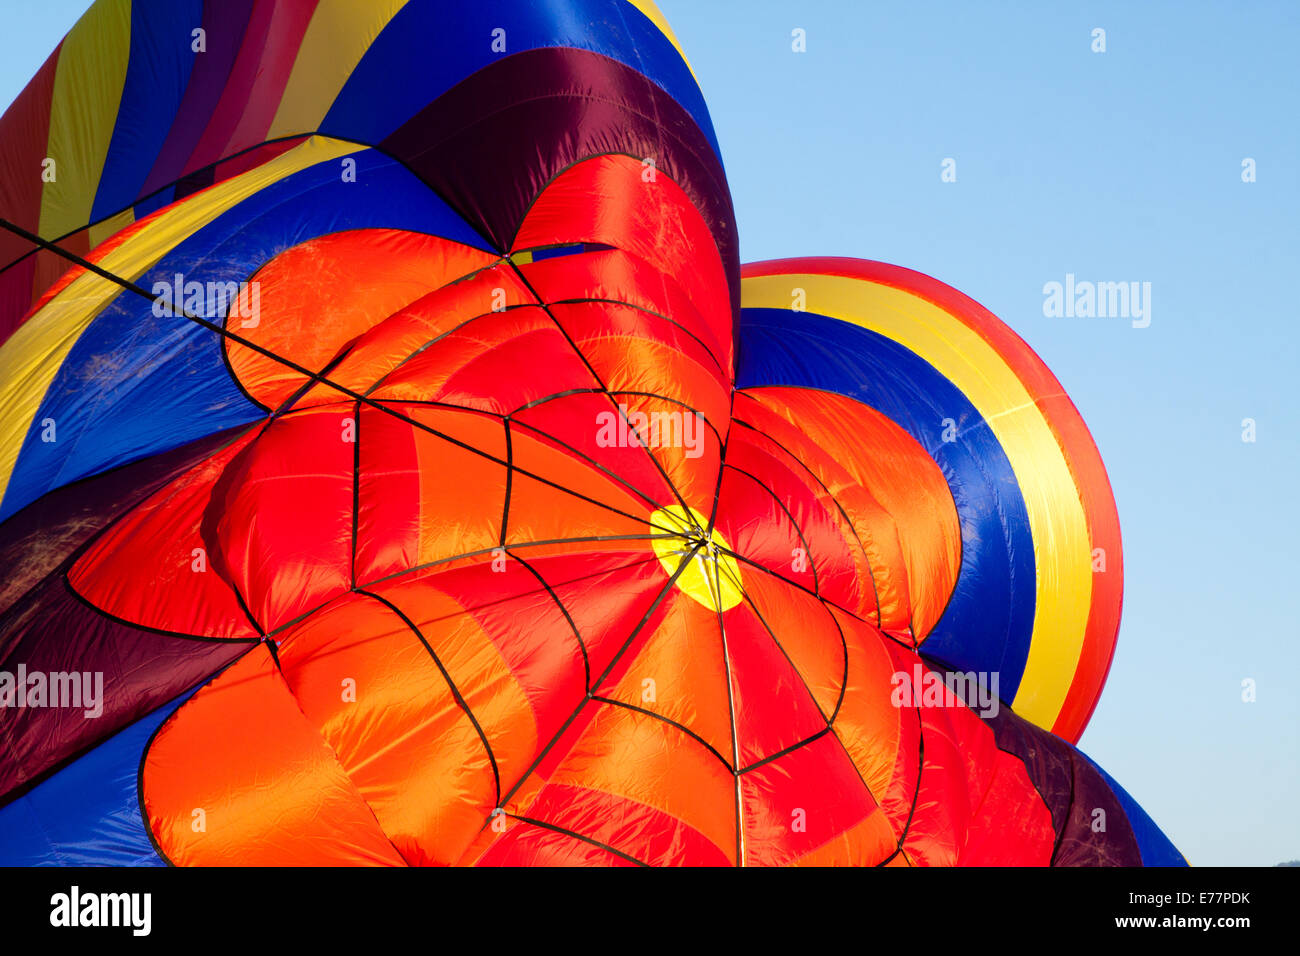 Top of a partially inflated rainbow-colored hot-air balloon Stock Photo